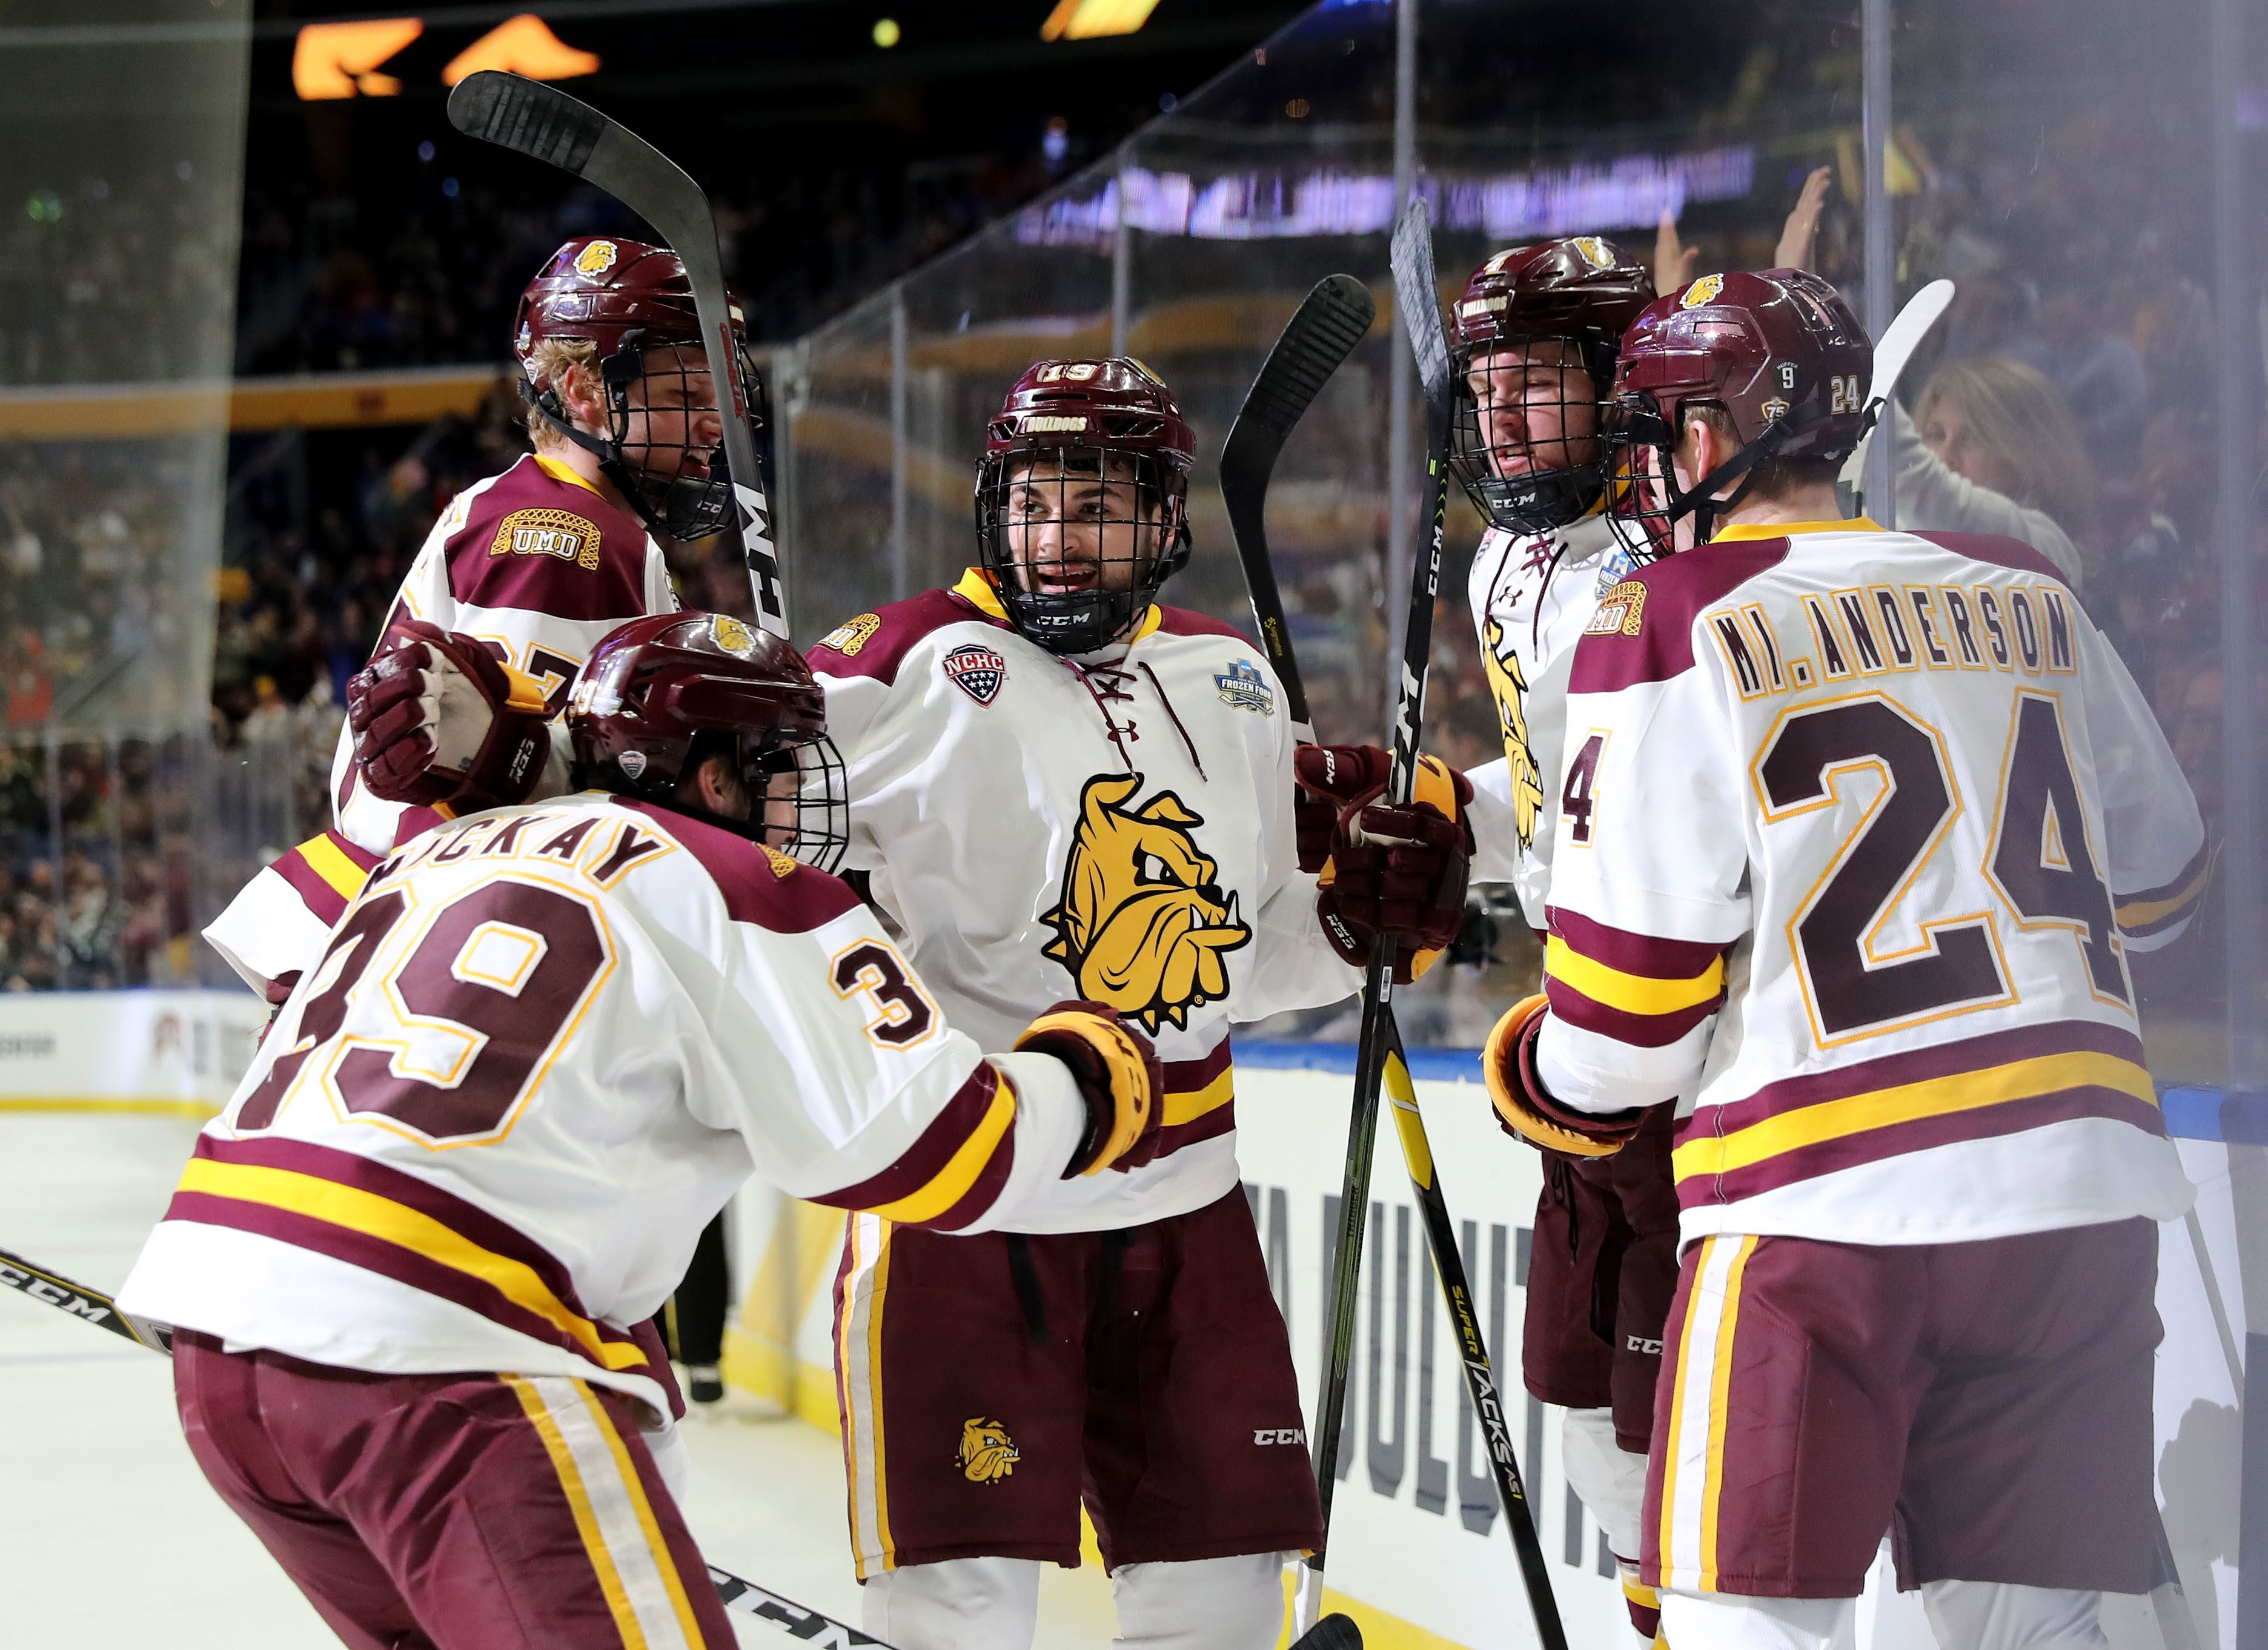 Umass Vs Minnesota Duluth Men S Ice Hockey National Championship